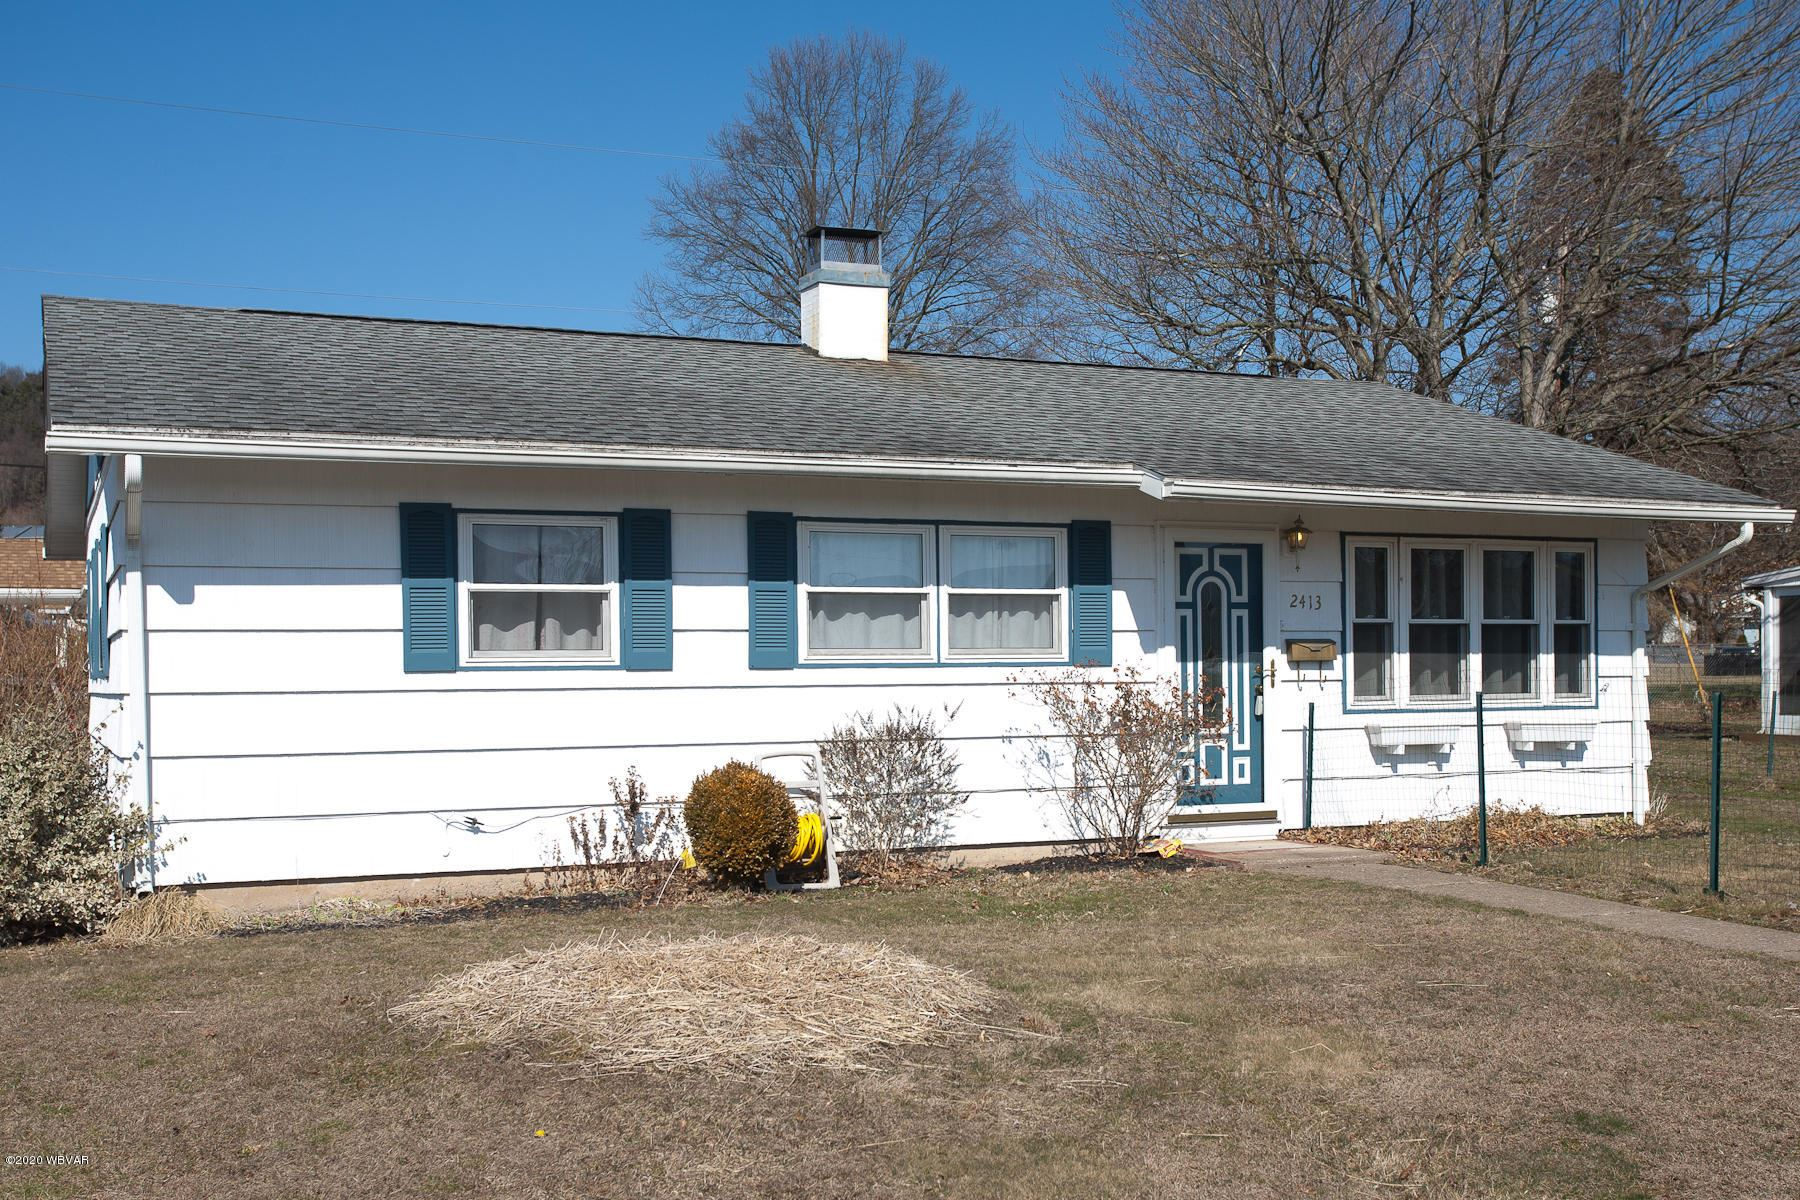 2413 RITCHEY STREET, Williamsport, PA 17701 - #: WB-89730